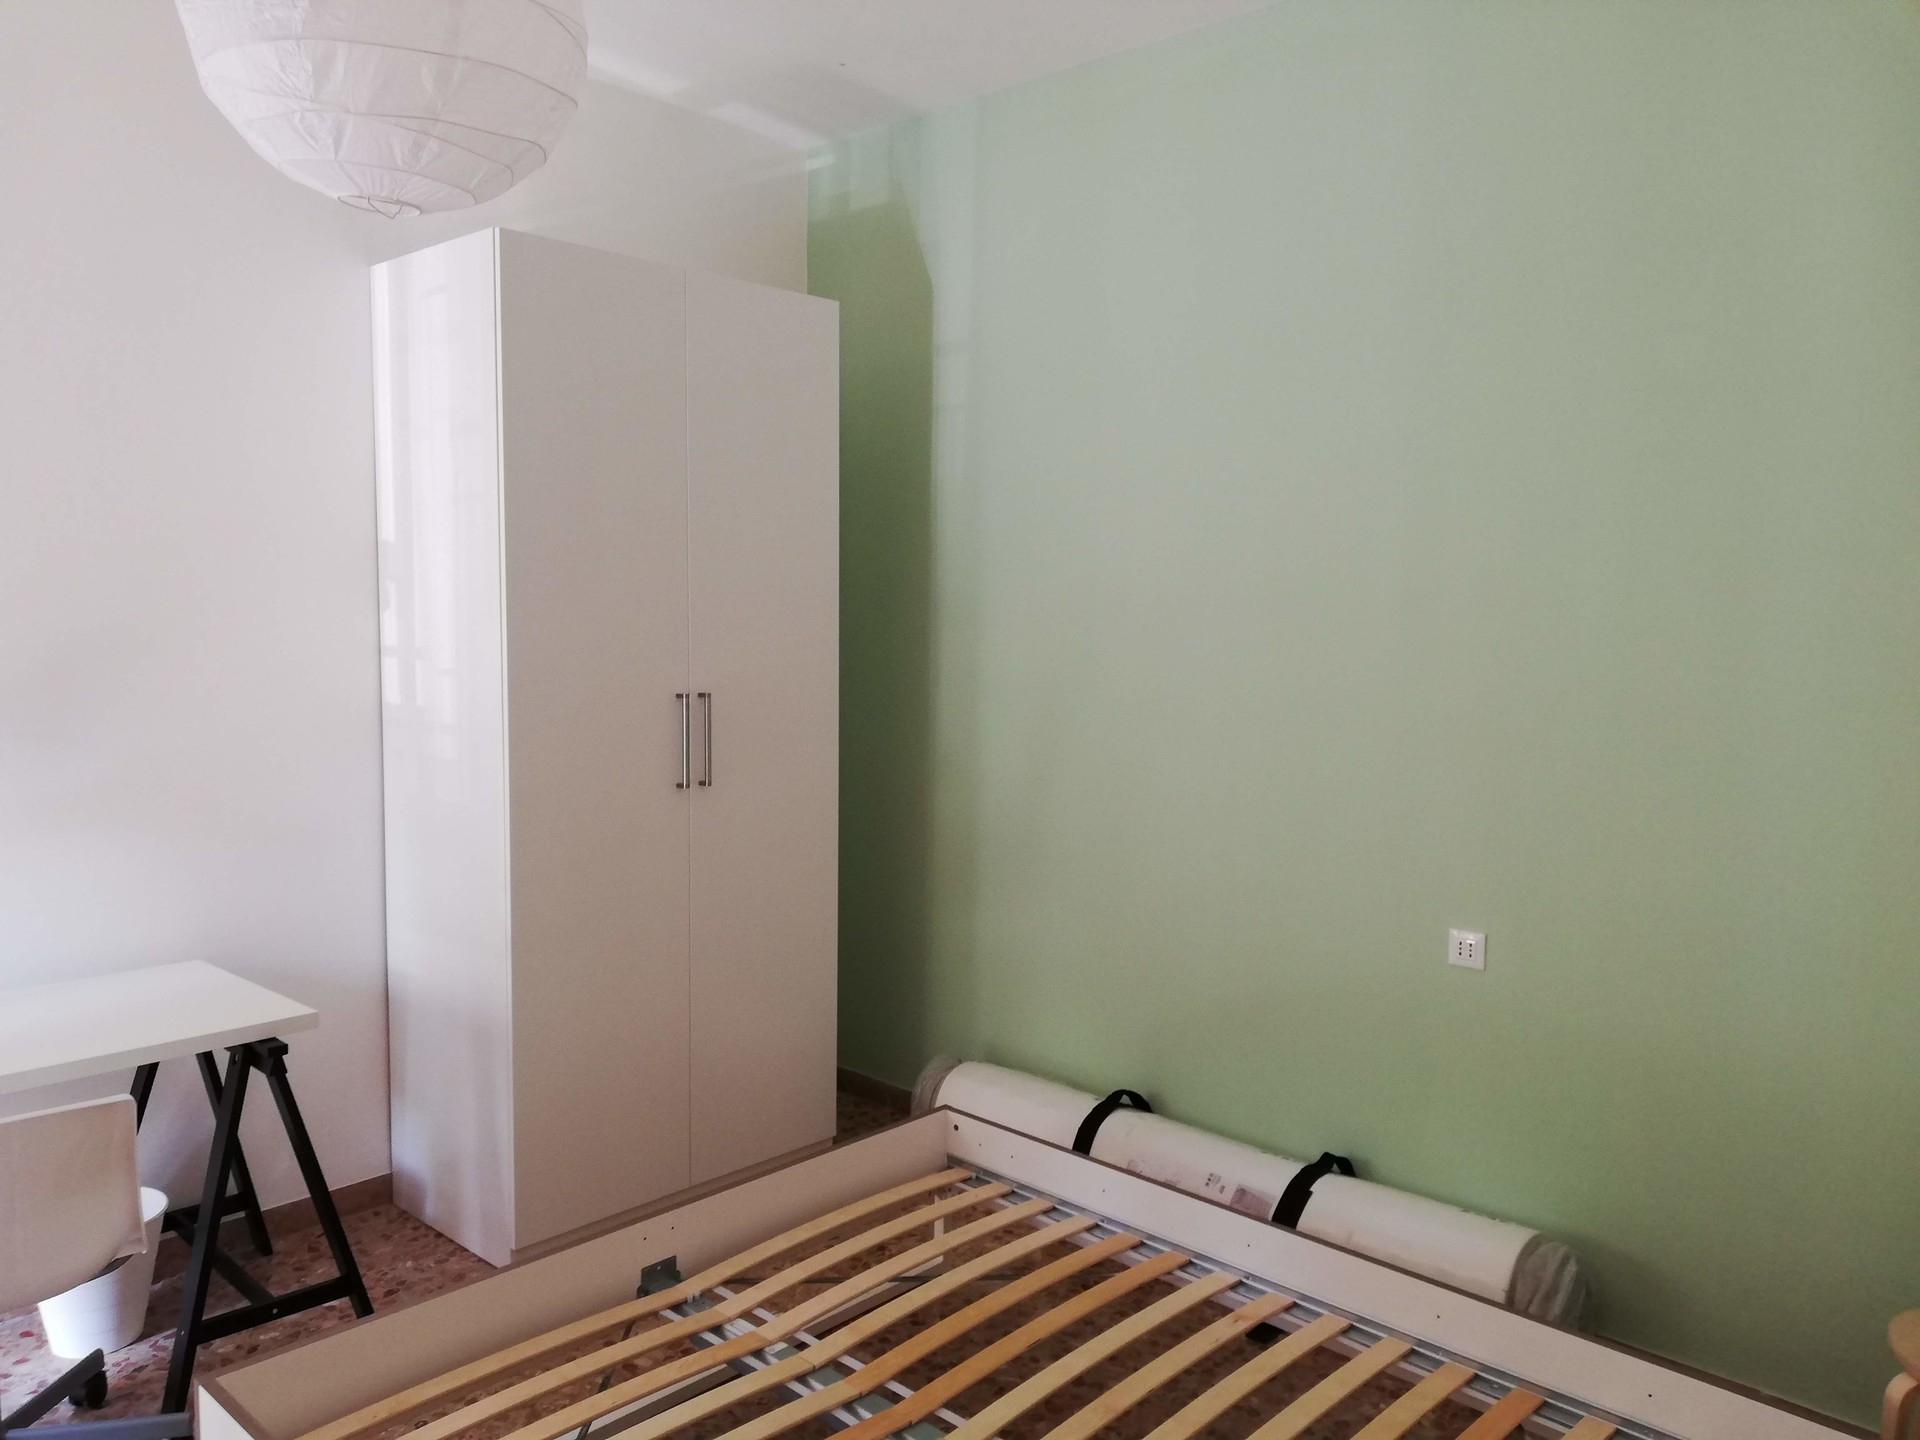 Picture of: Room With King Size Bed Available For Single Student With Balcony All Renovated And New Near Uni Campus Room For Rent Forli